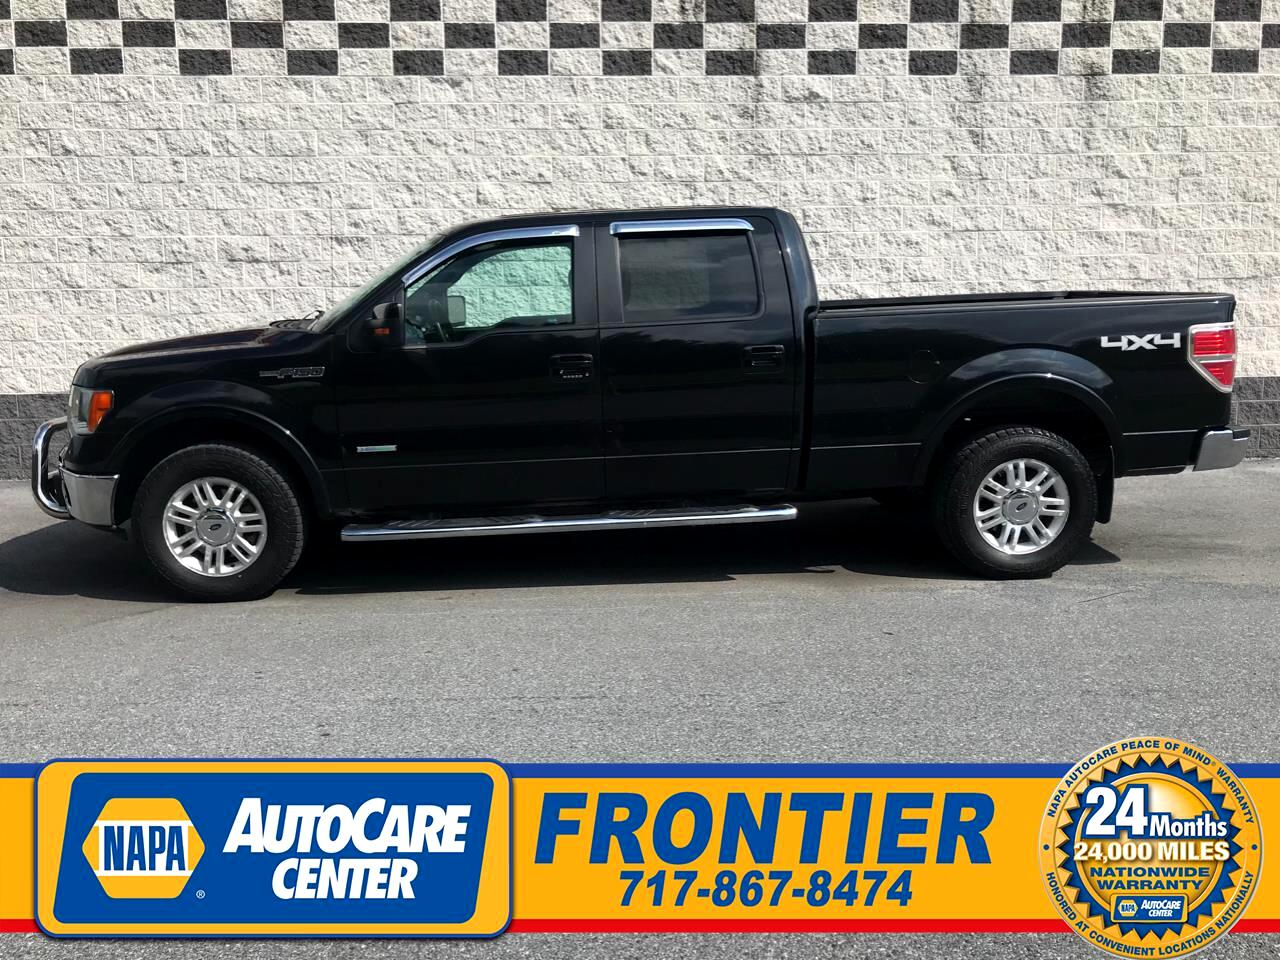 used cars lebanon pa used cars trucks pa frontier auto sales used cars lebanon pa used cars